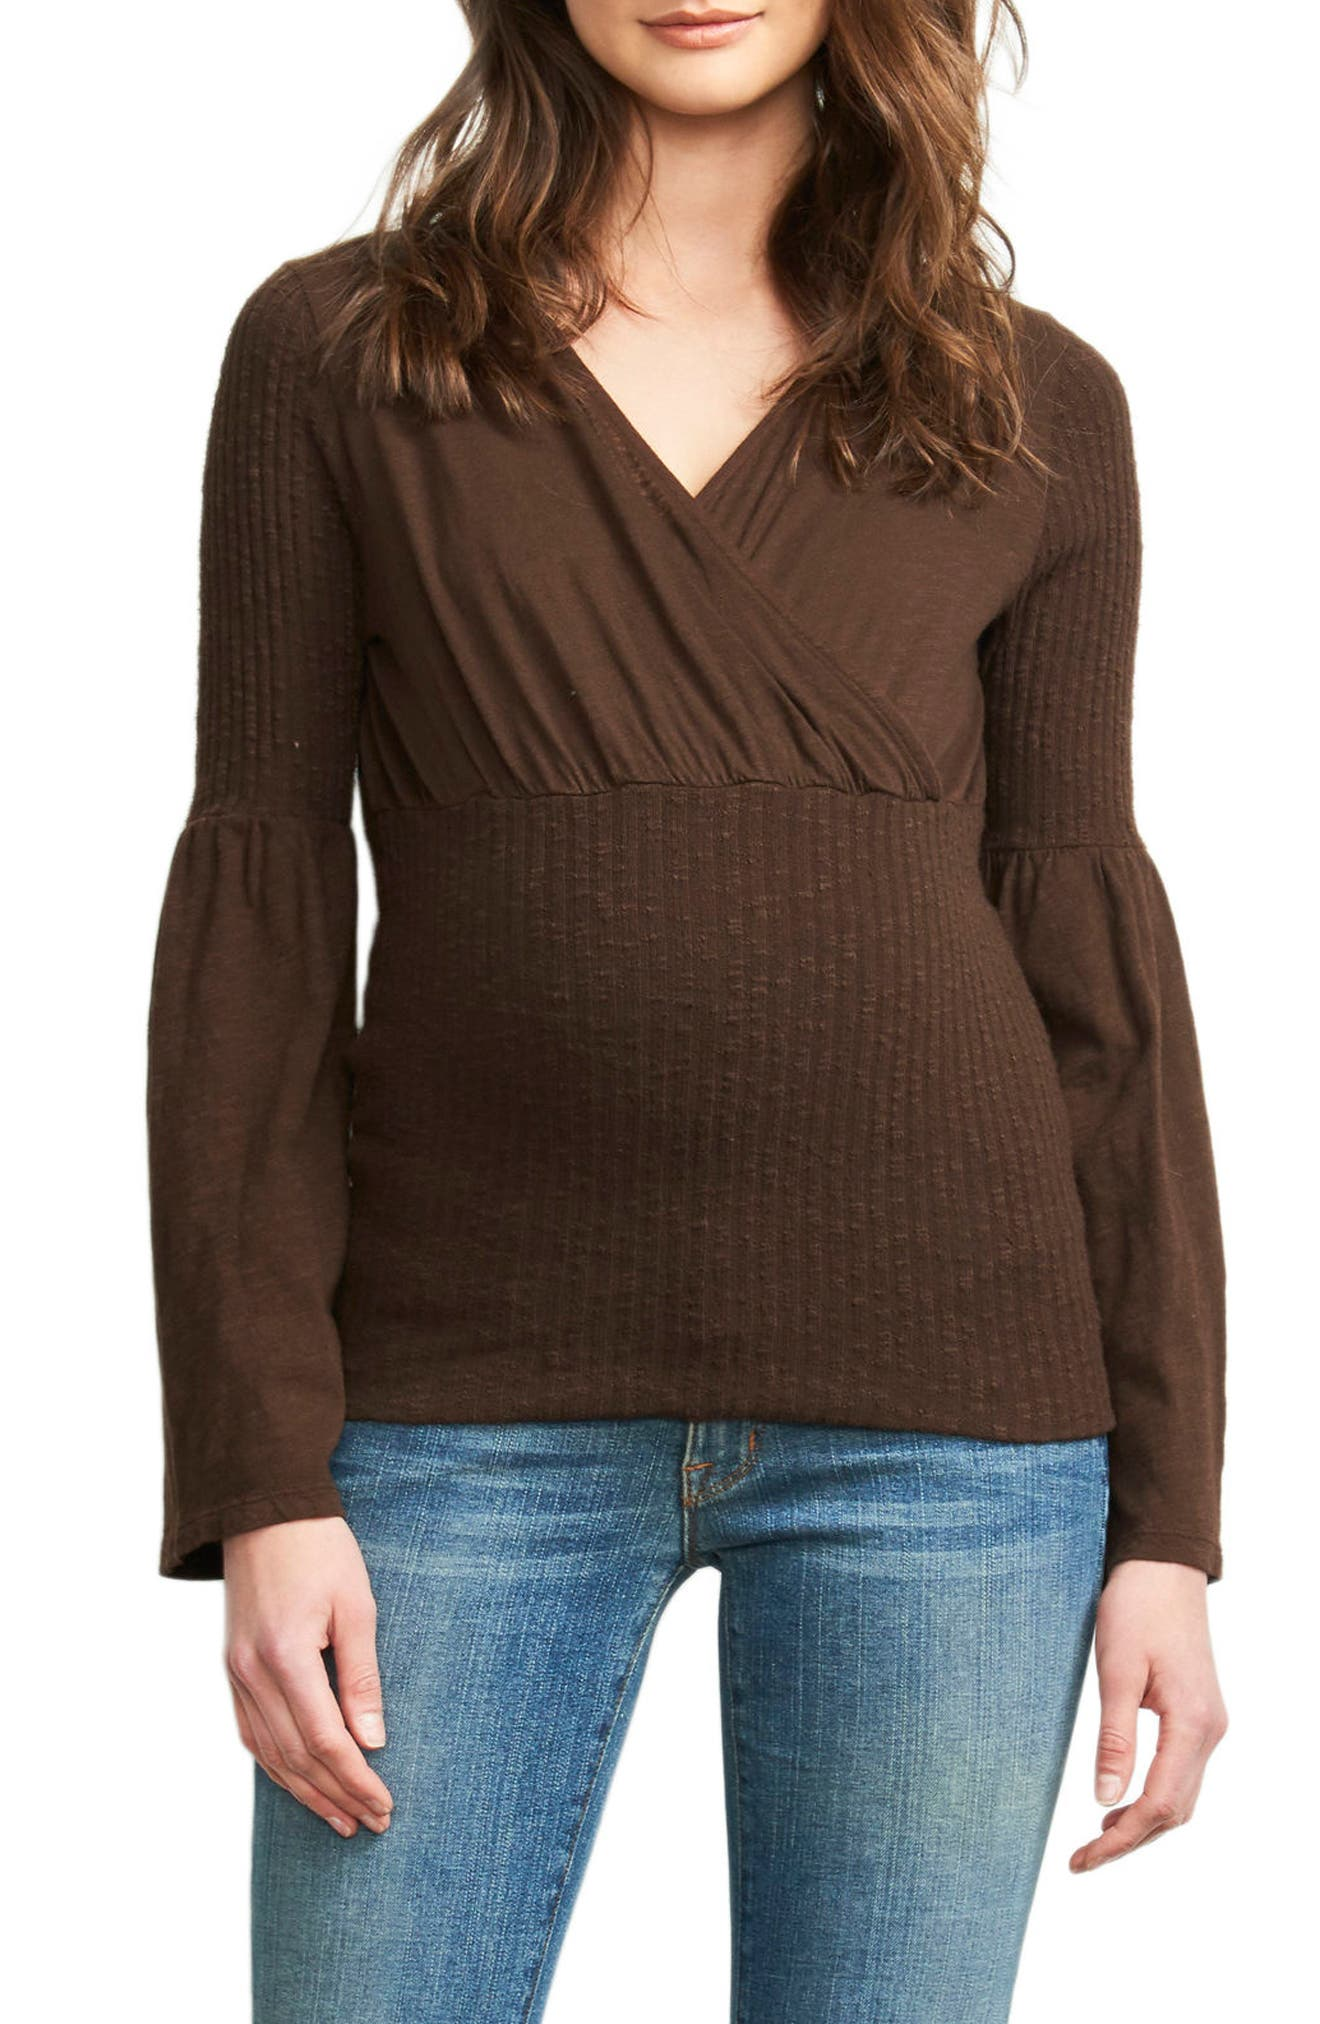 Belly Hug Knit Maternity Top,                         Main,                         color, Chocolate